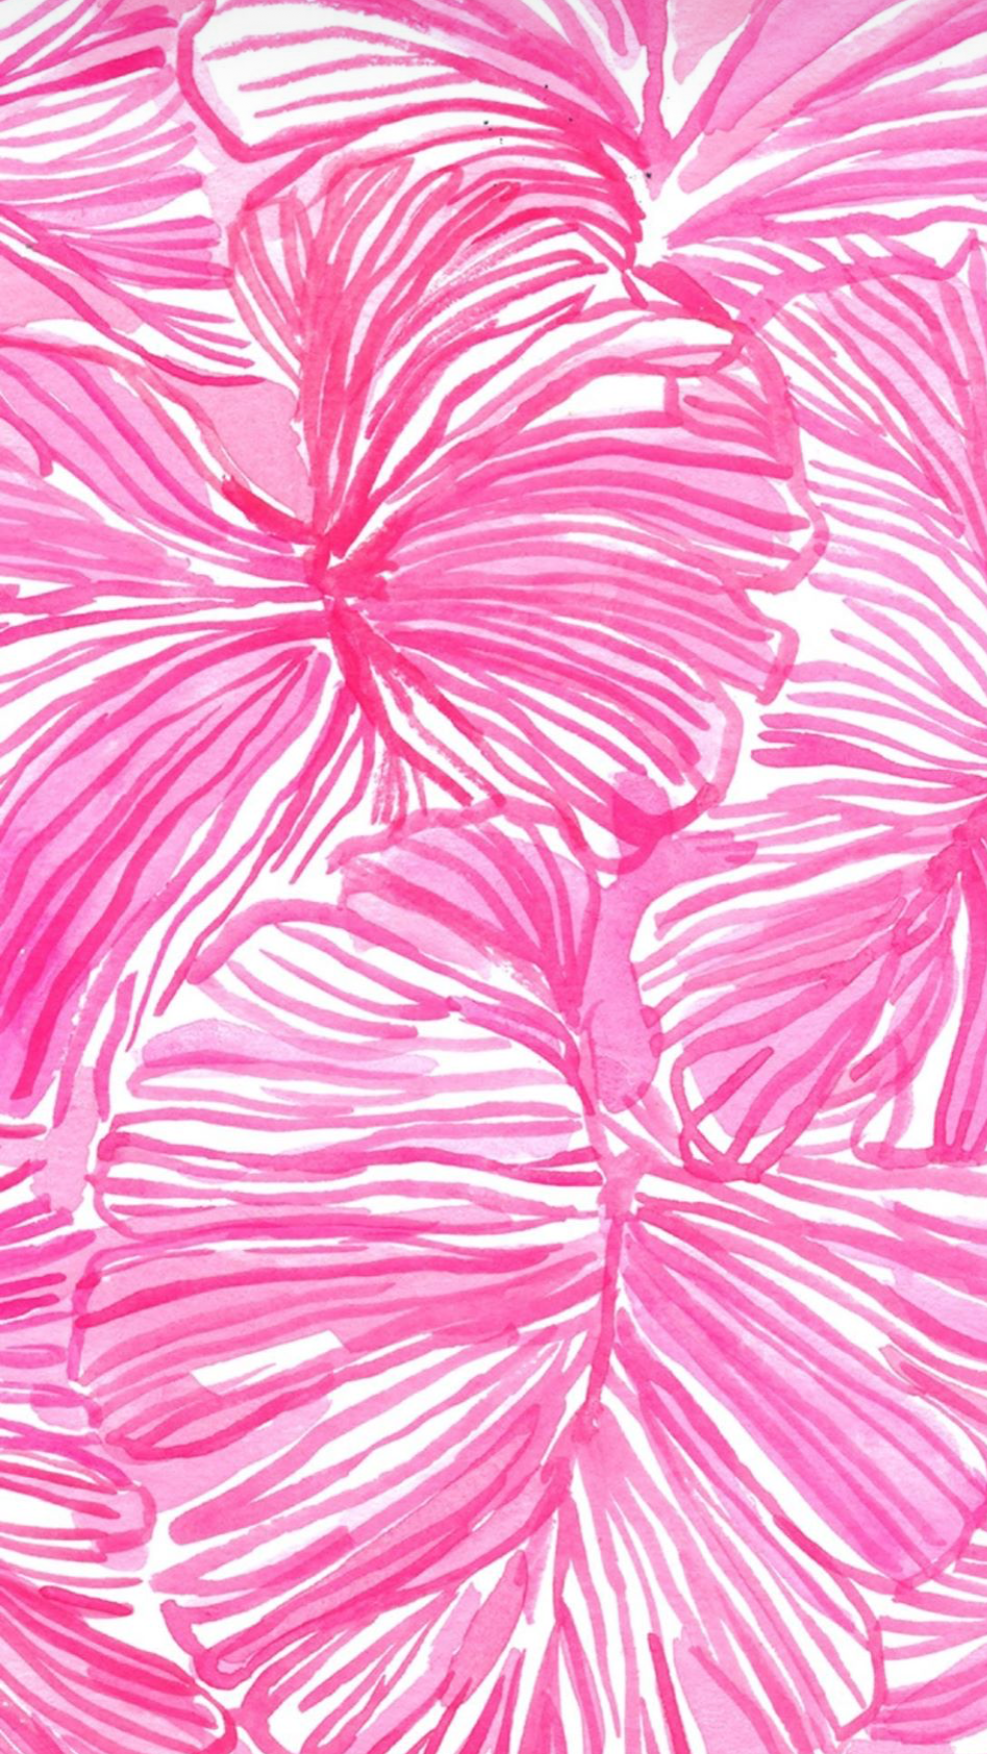 Lilly Pulitzer Wall Paper Pink Palm Tree Preppy Wallpaper Lily Pulitzer Wallpaper Picture Collage Wall